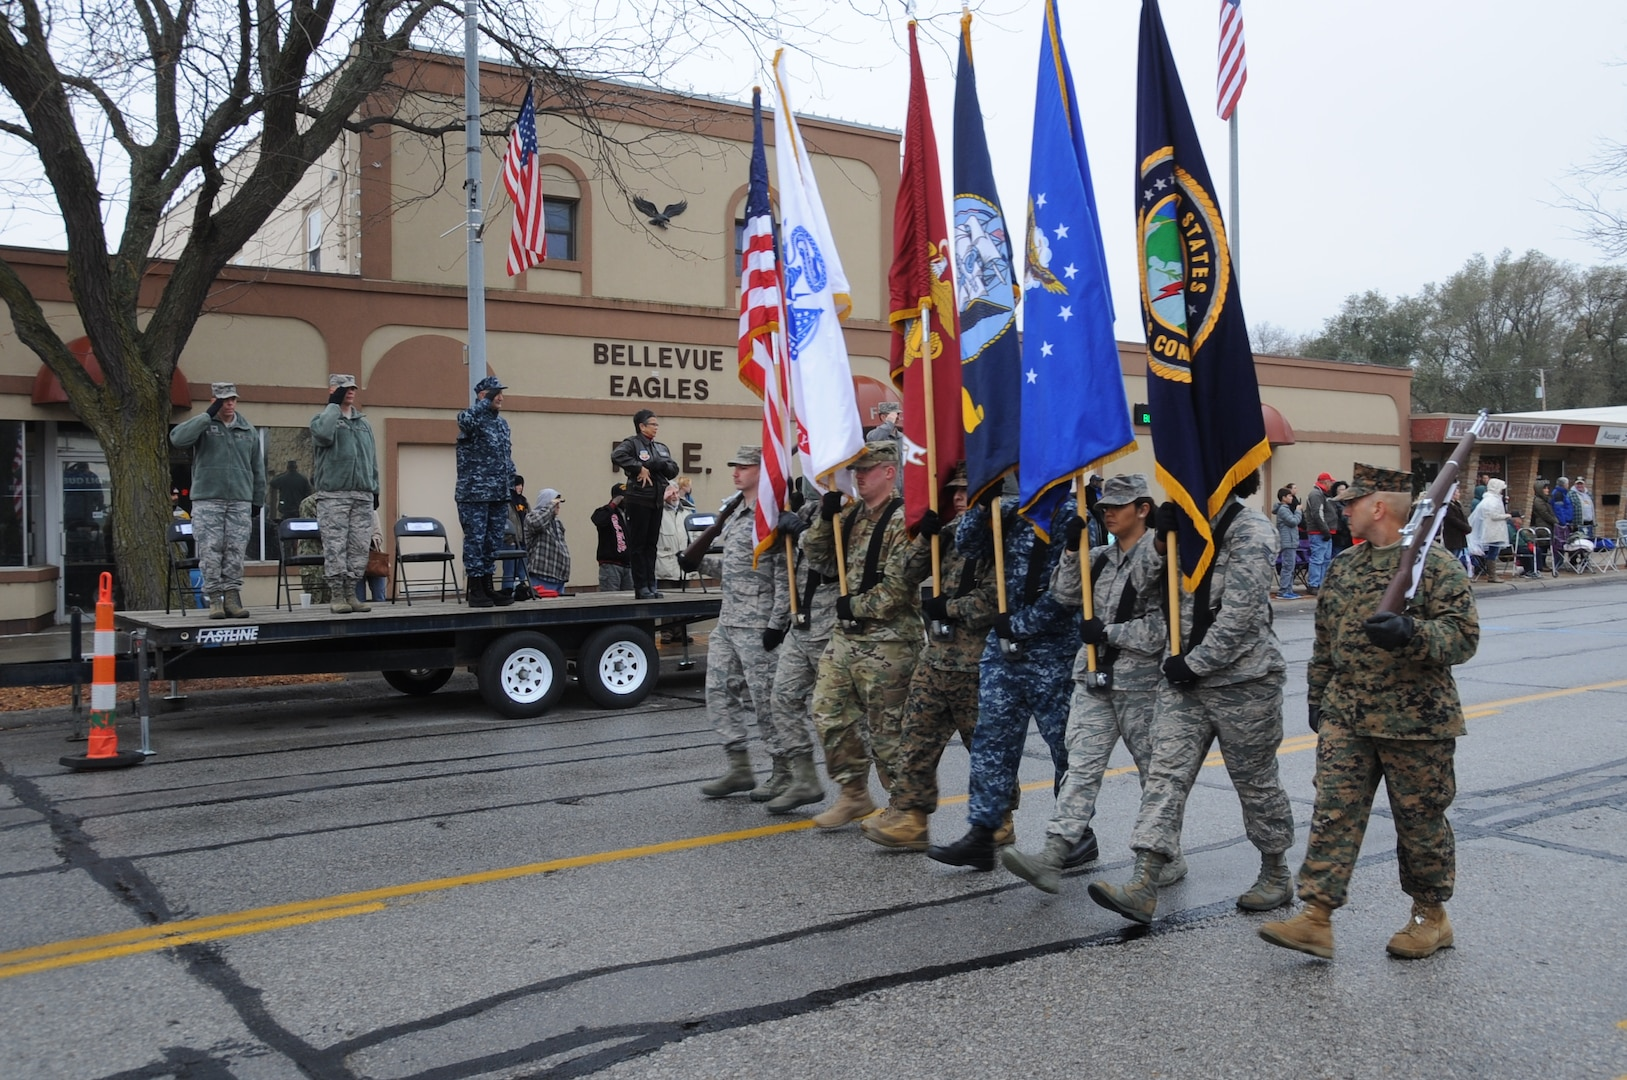 Senior leaders from U.S. Strategic Command (USSTRATCOM), the 55th Wing and the local community pay respects to the United States flag during the 2017 Bellevue Veterans Day Parade in Bellevue, Neb., Nov. 11, 2017. In addition to the parade, USSTRATCOM and 55th Wing leaders also participated in Veterans Day events at Memorial Park and the Eastern Nebraska Veterans Home to honor the service and sacrifice of American veterans and their families.